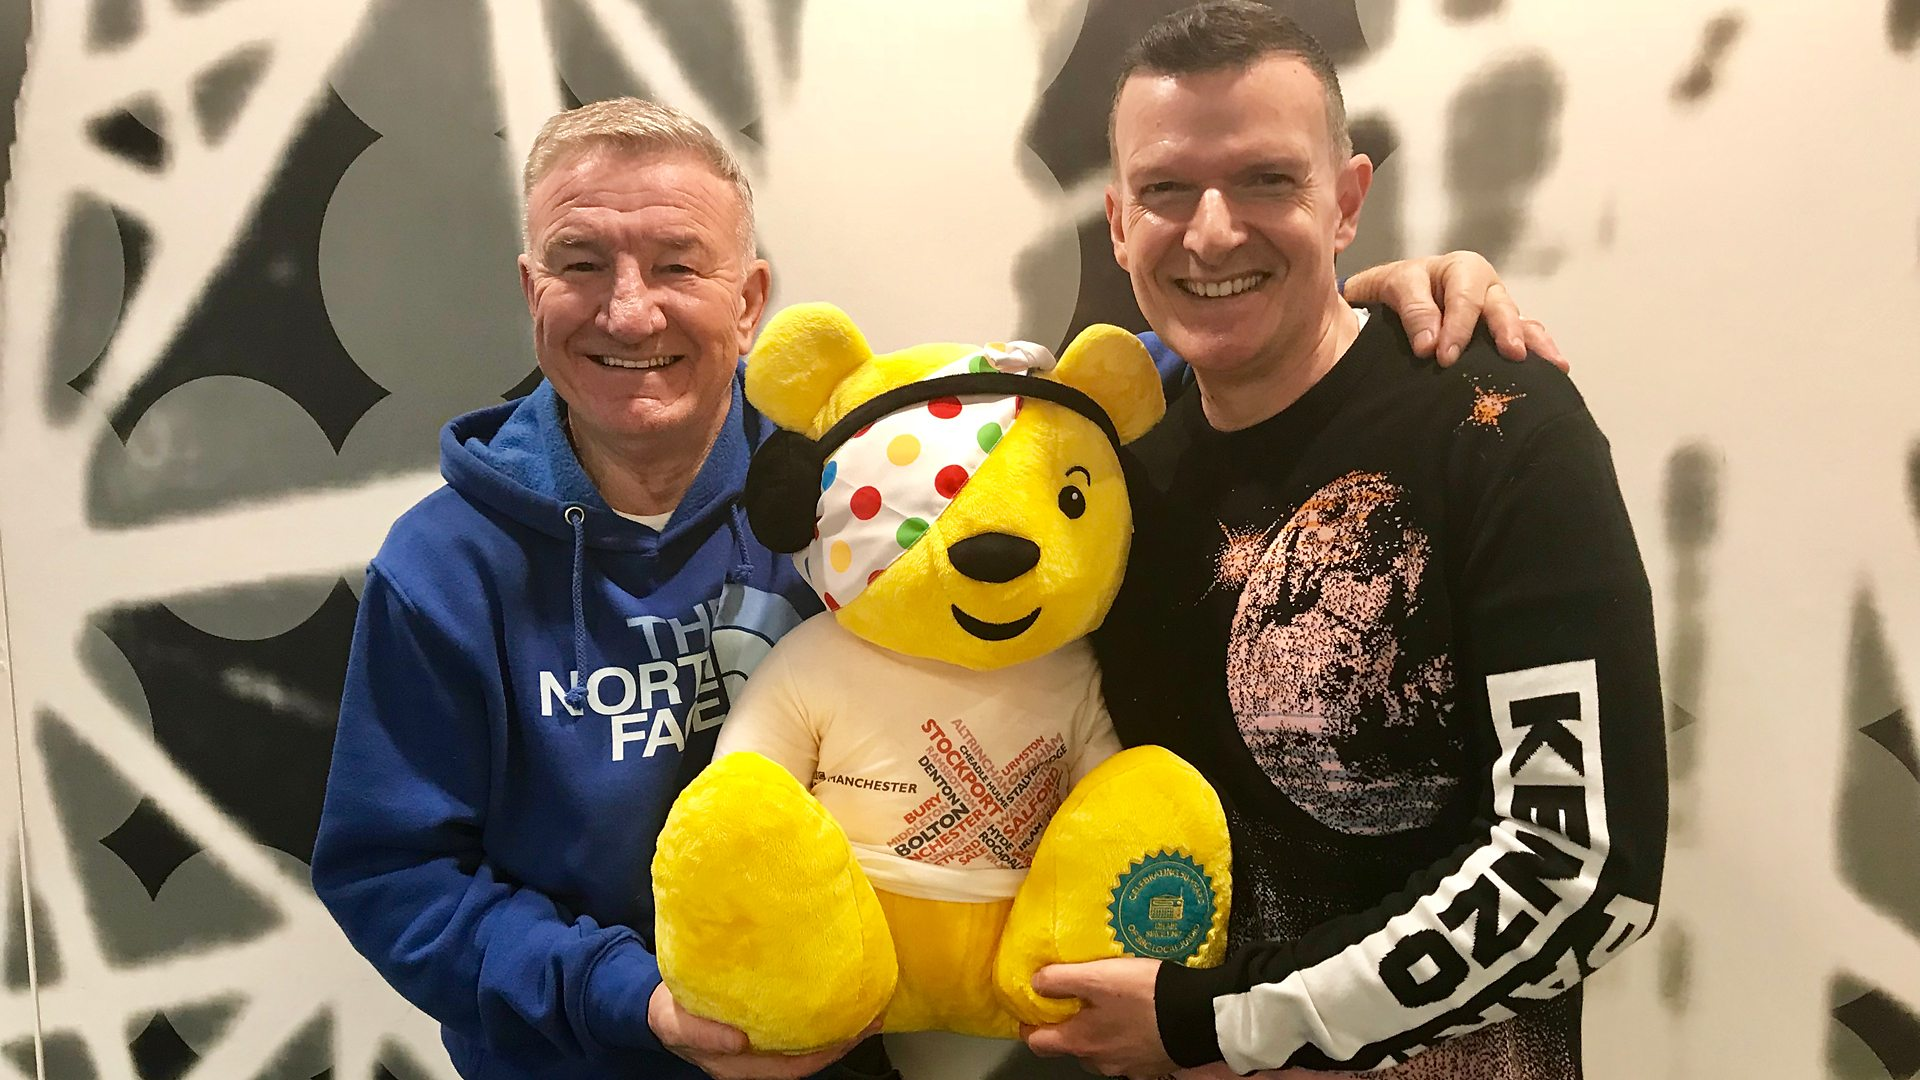 BBC   Pound the Streets for Pudsey 1920x1080